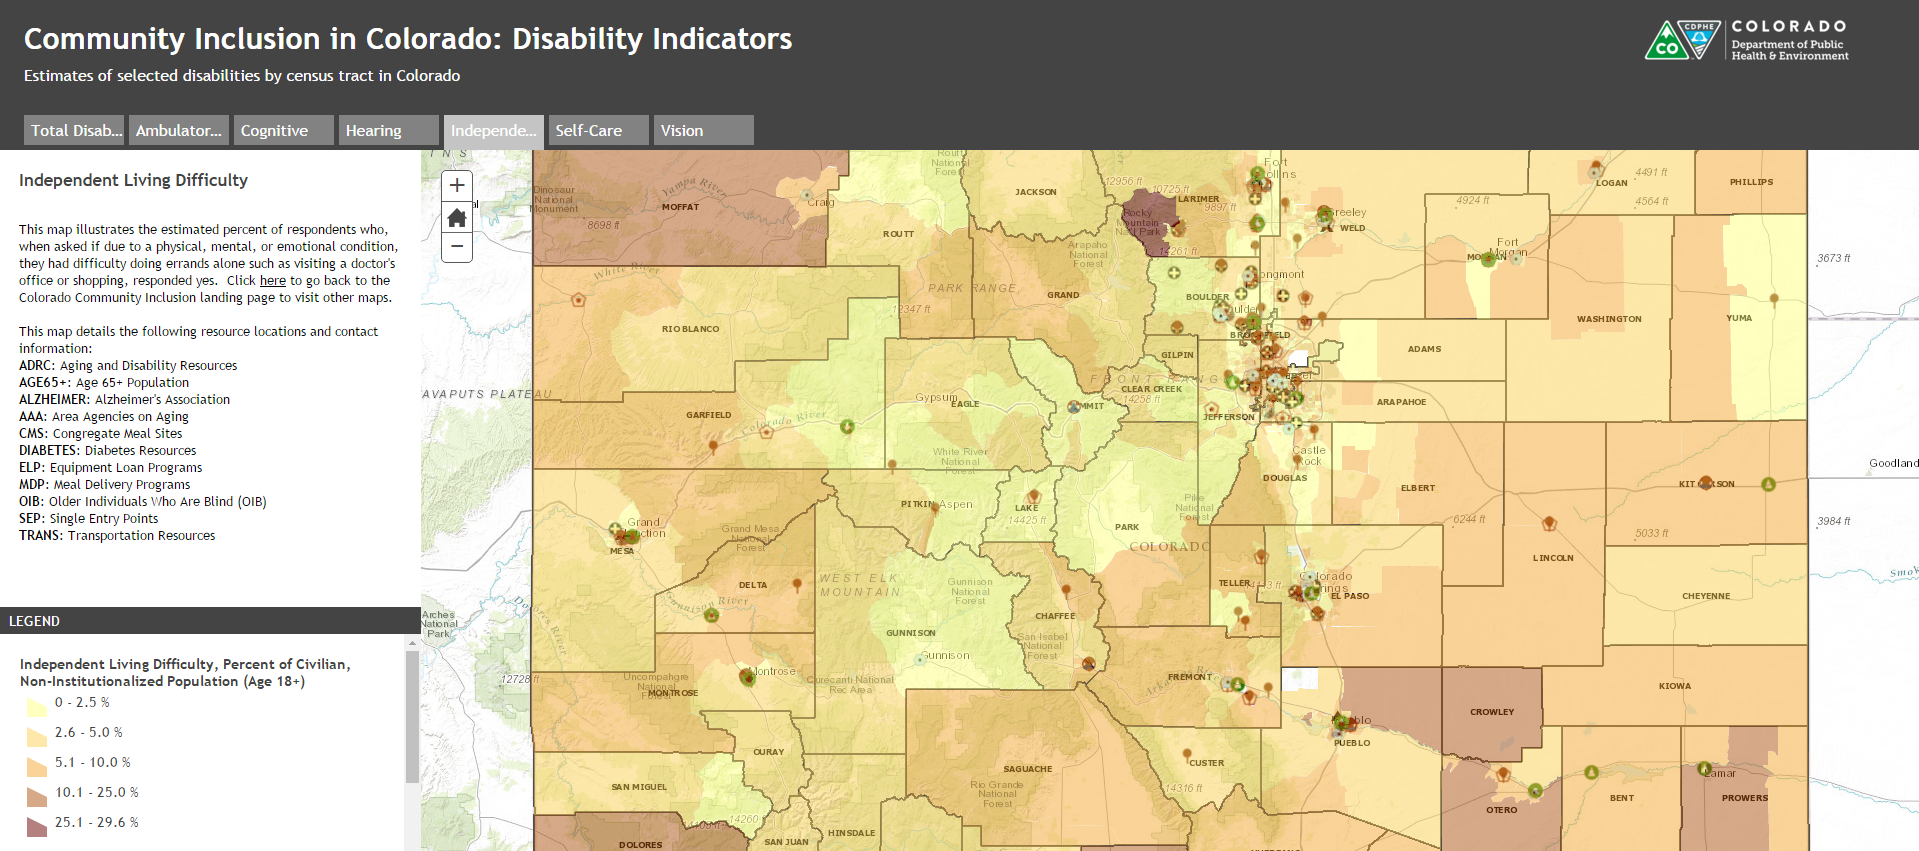 Colorado Community Inclusion - Colorado maps